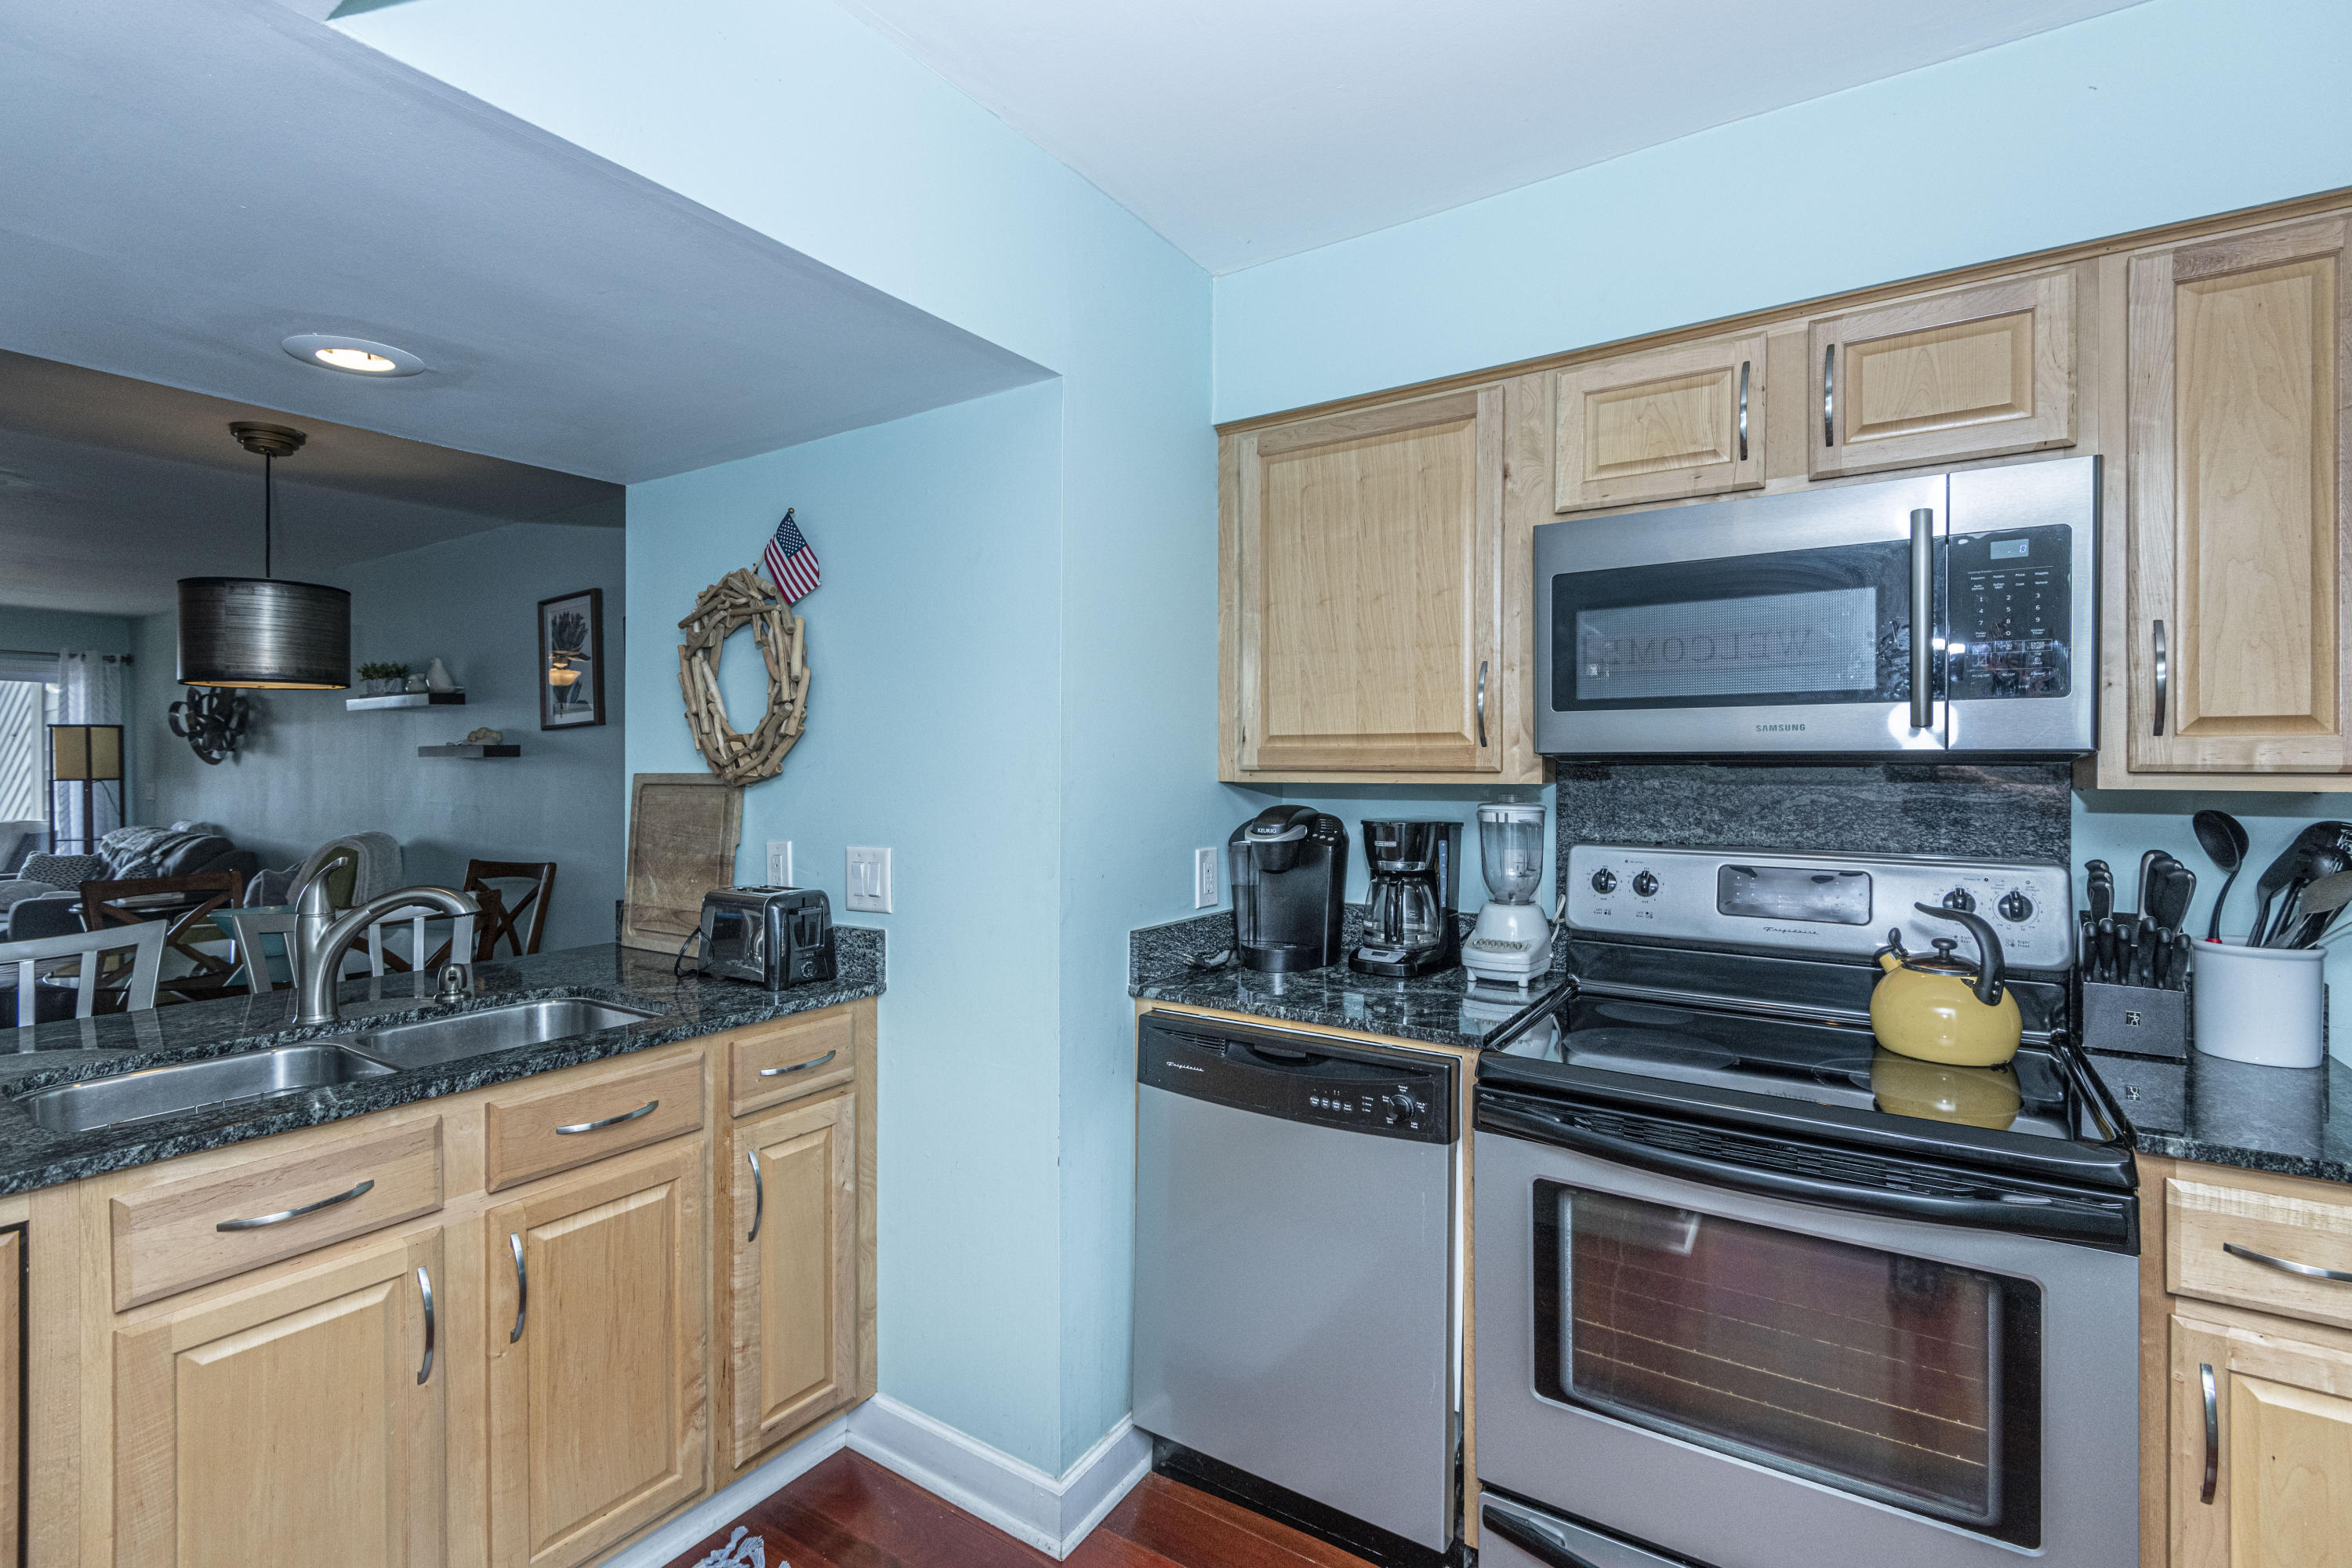 Mariners Cay Homes For Sale - 60 Mariners Cay, Folly Beach, SC - 2